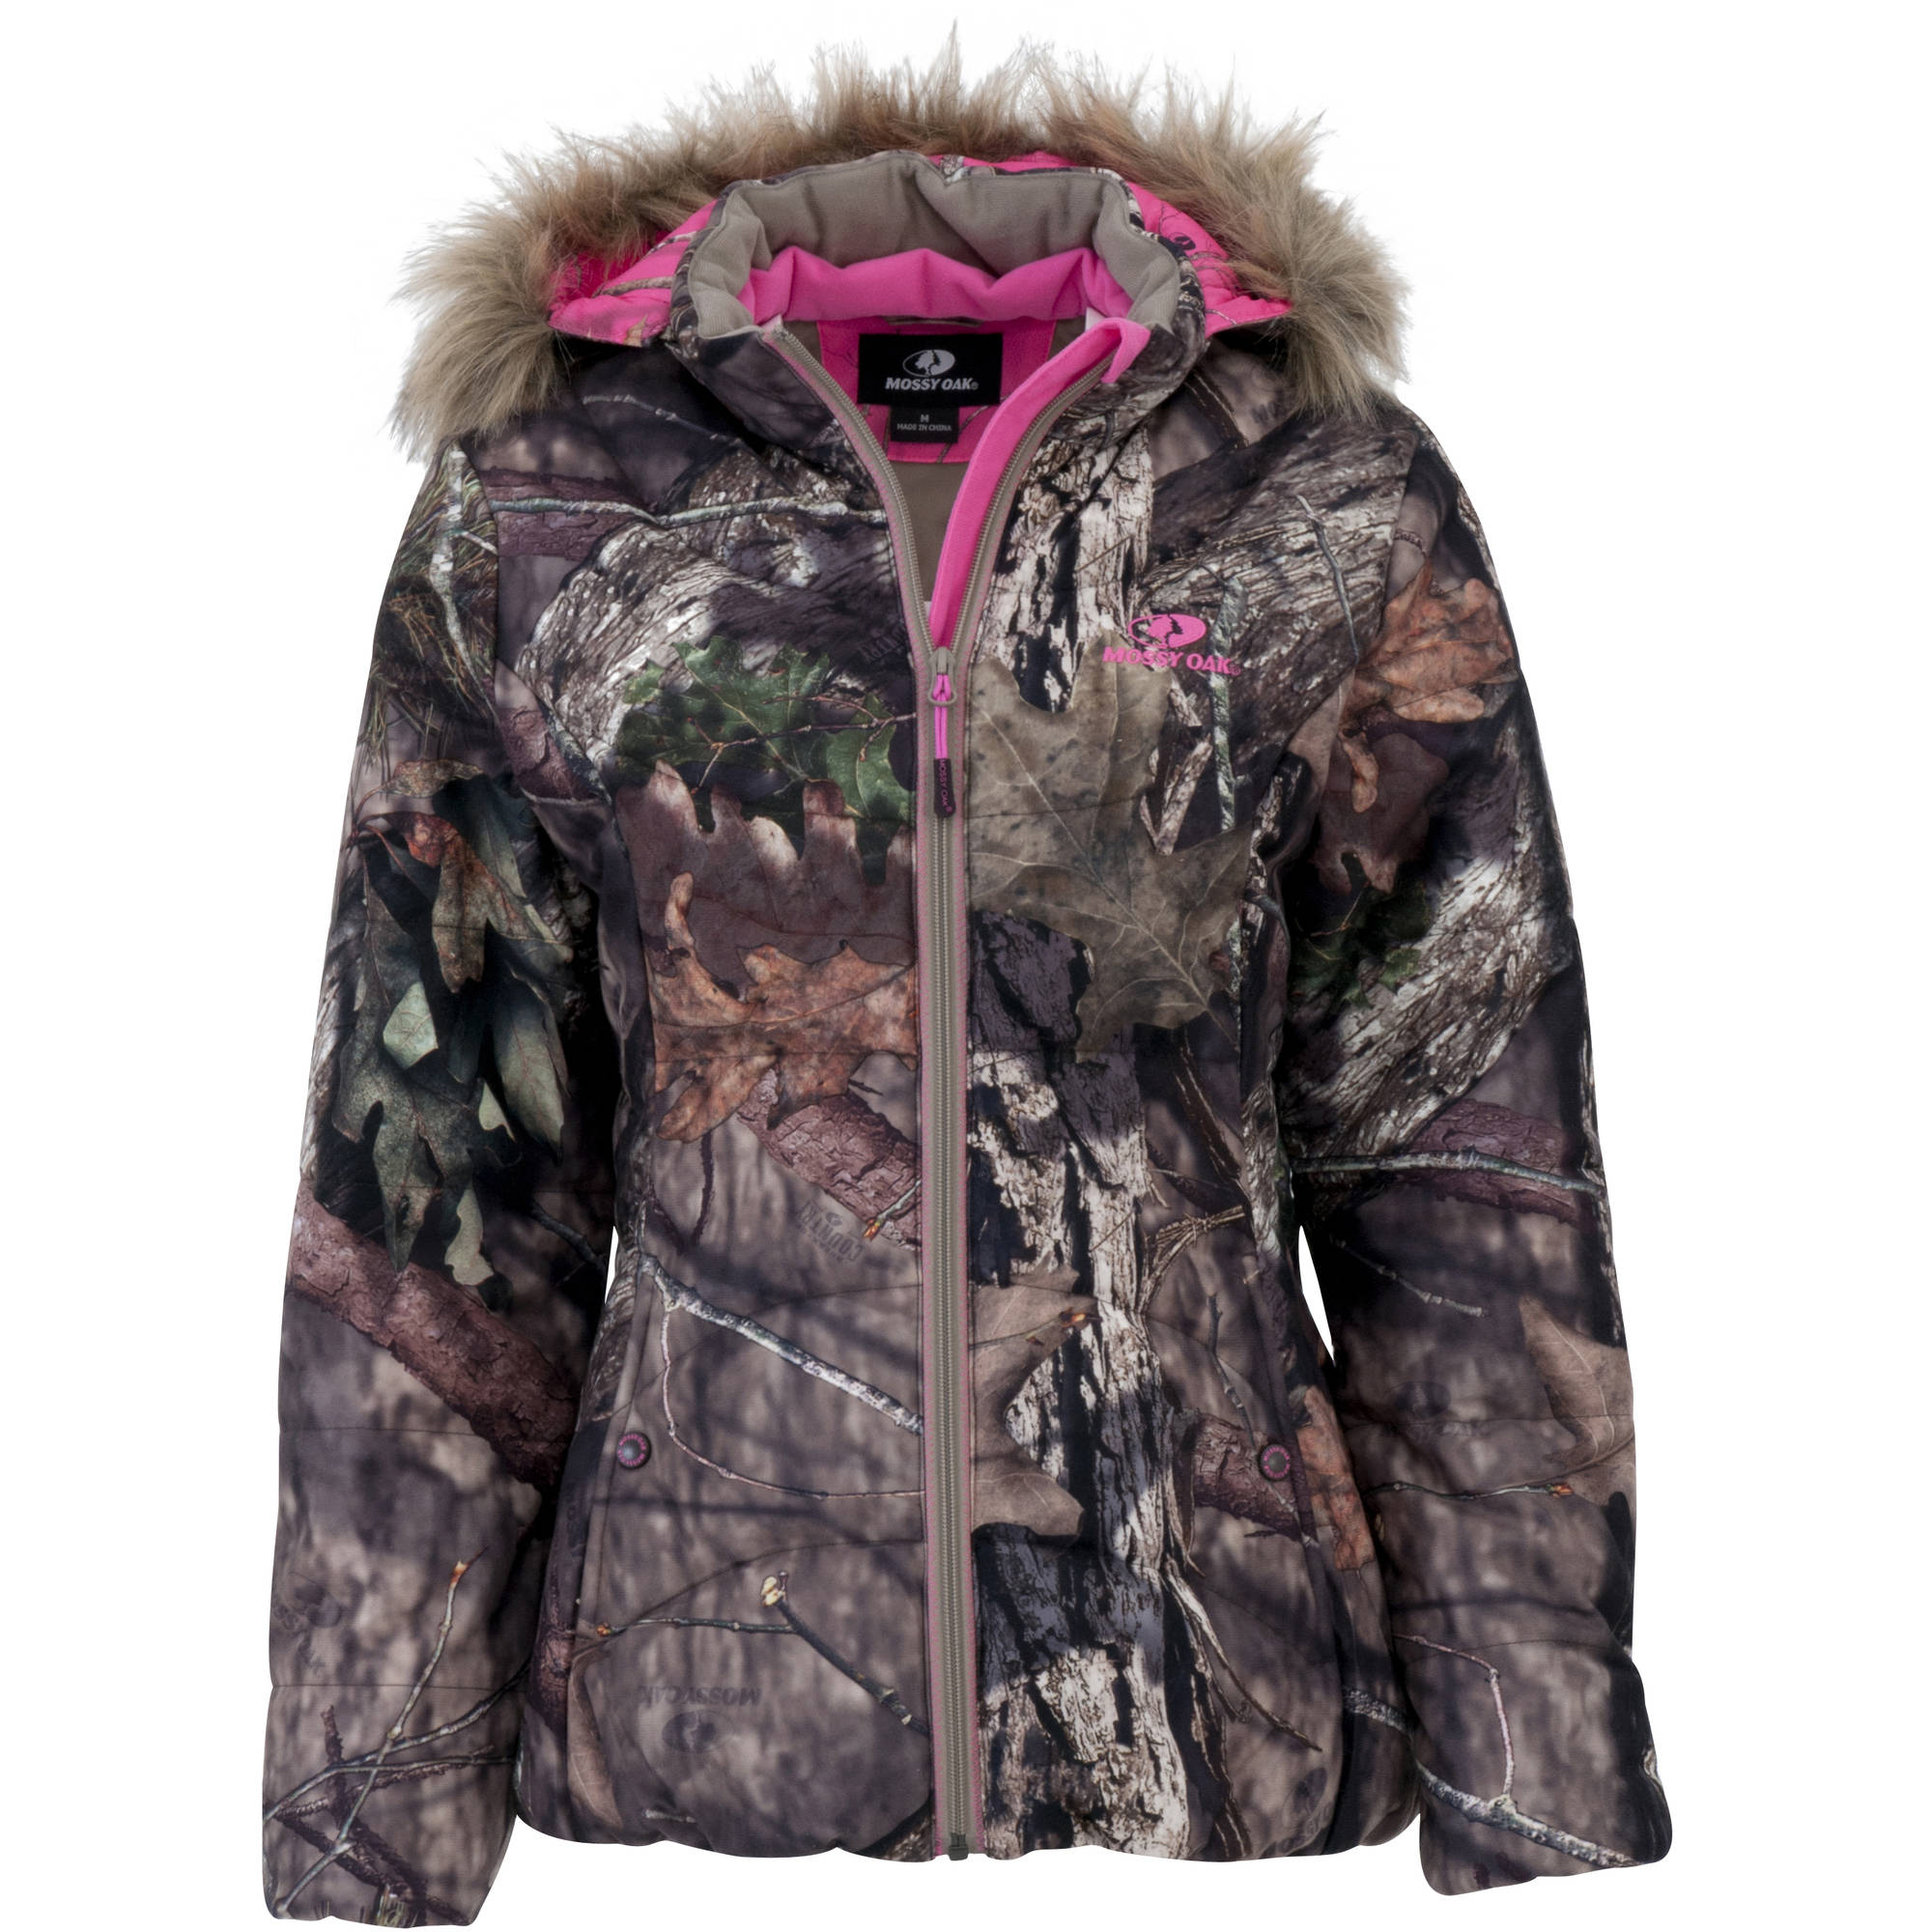 Womens Jacket Bubble, Mossy Oak Breakup Country